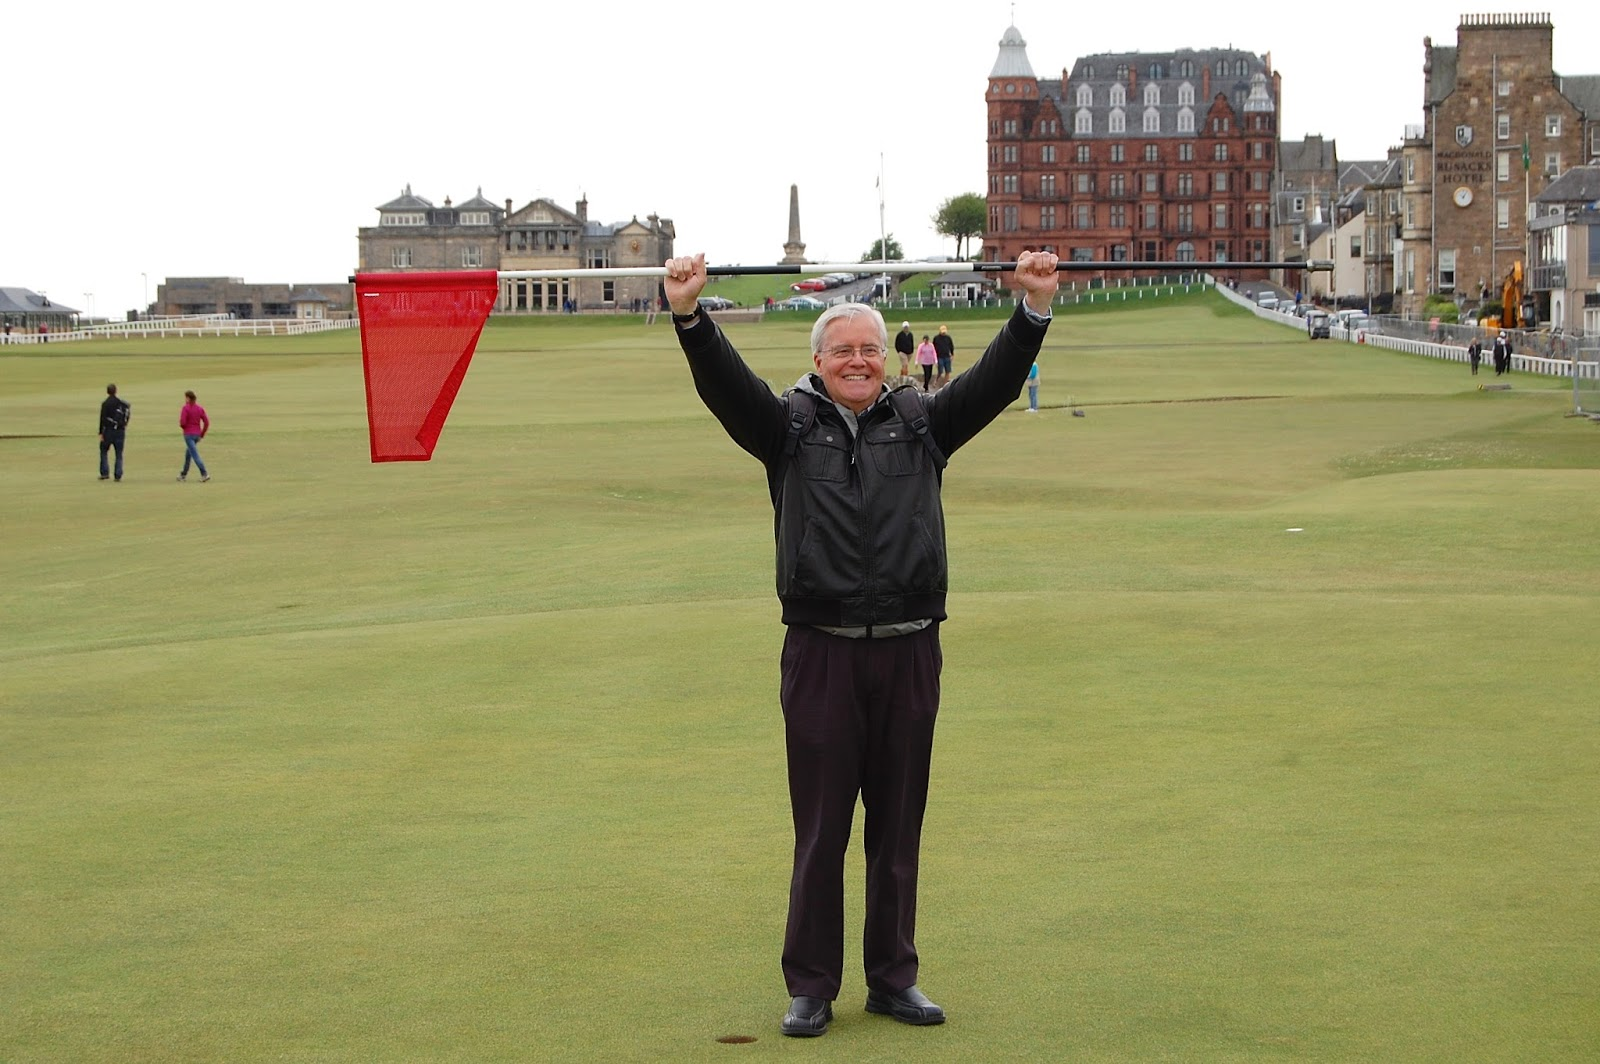 Holding a flag on the Old Course